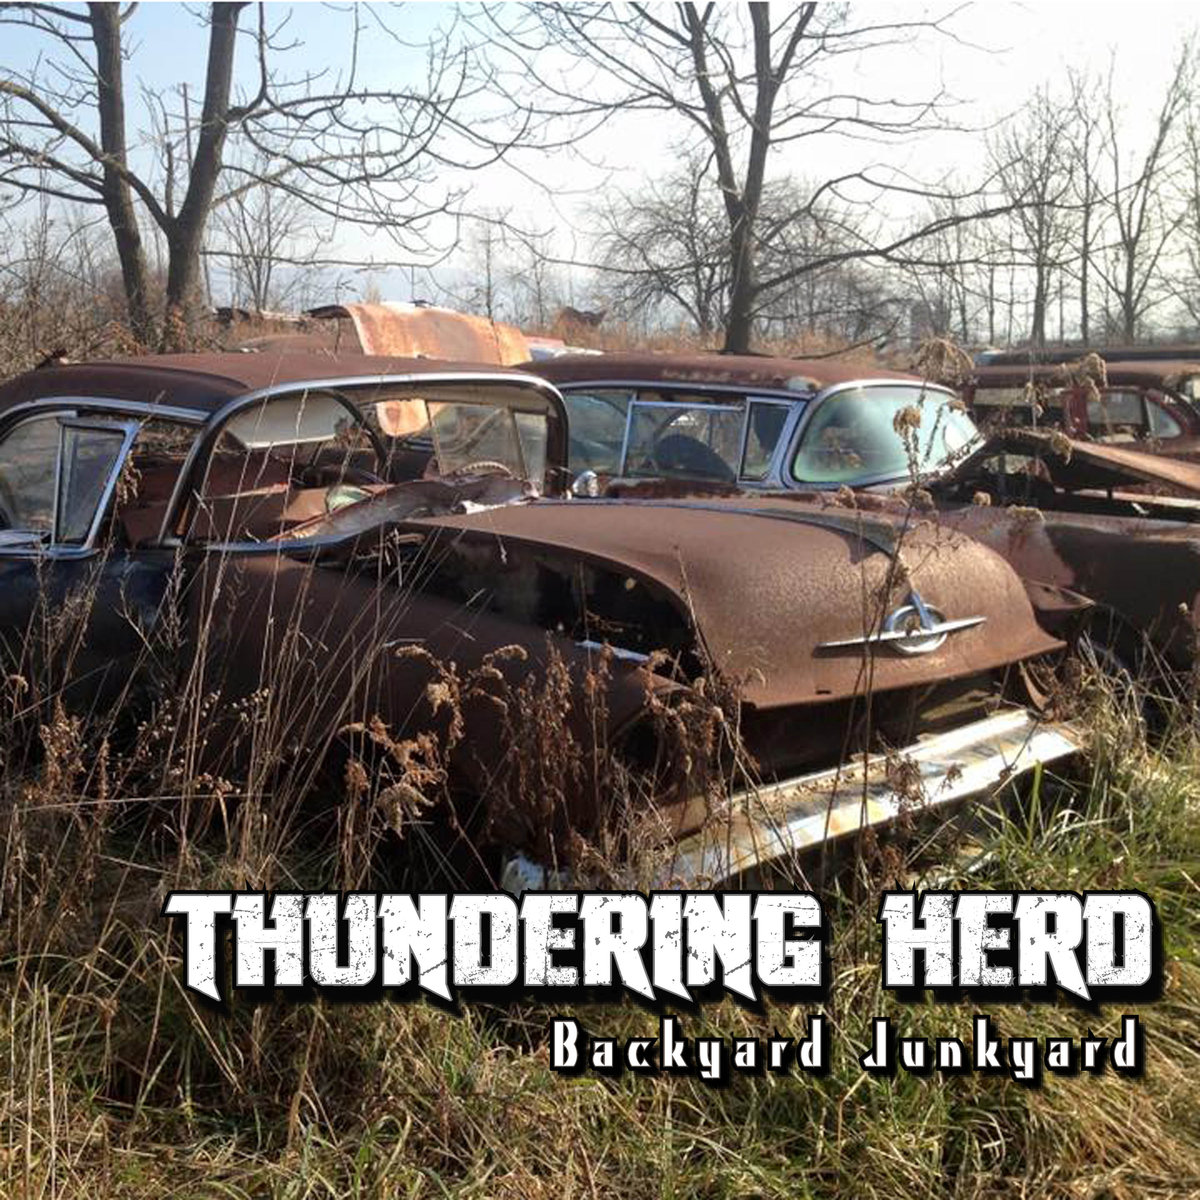 heavy planet band submission thundering herd biker metal